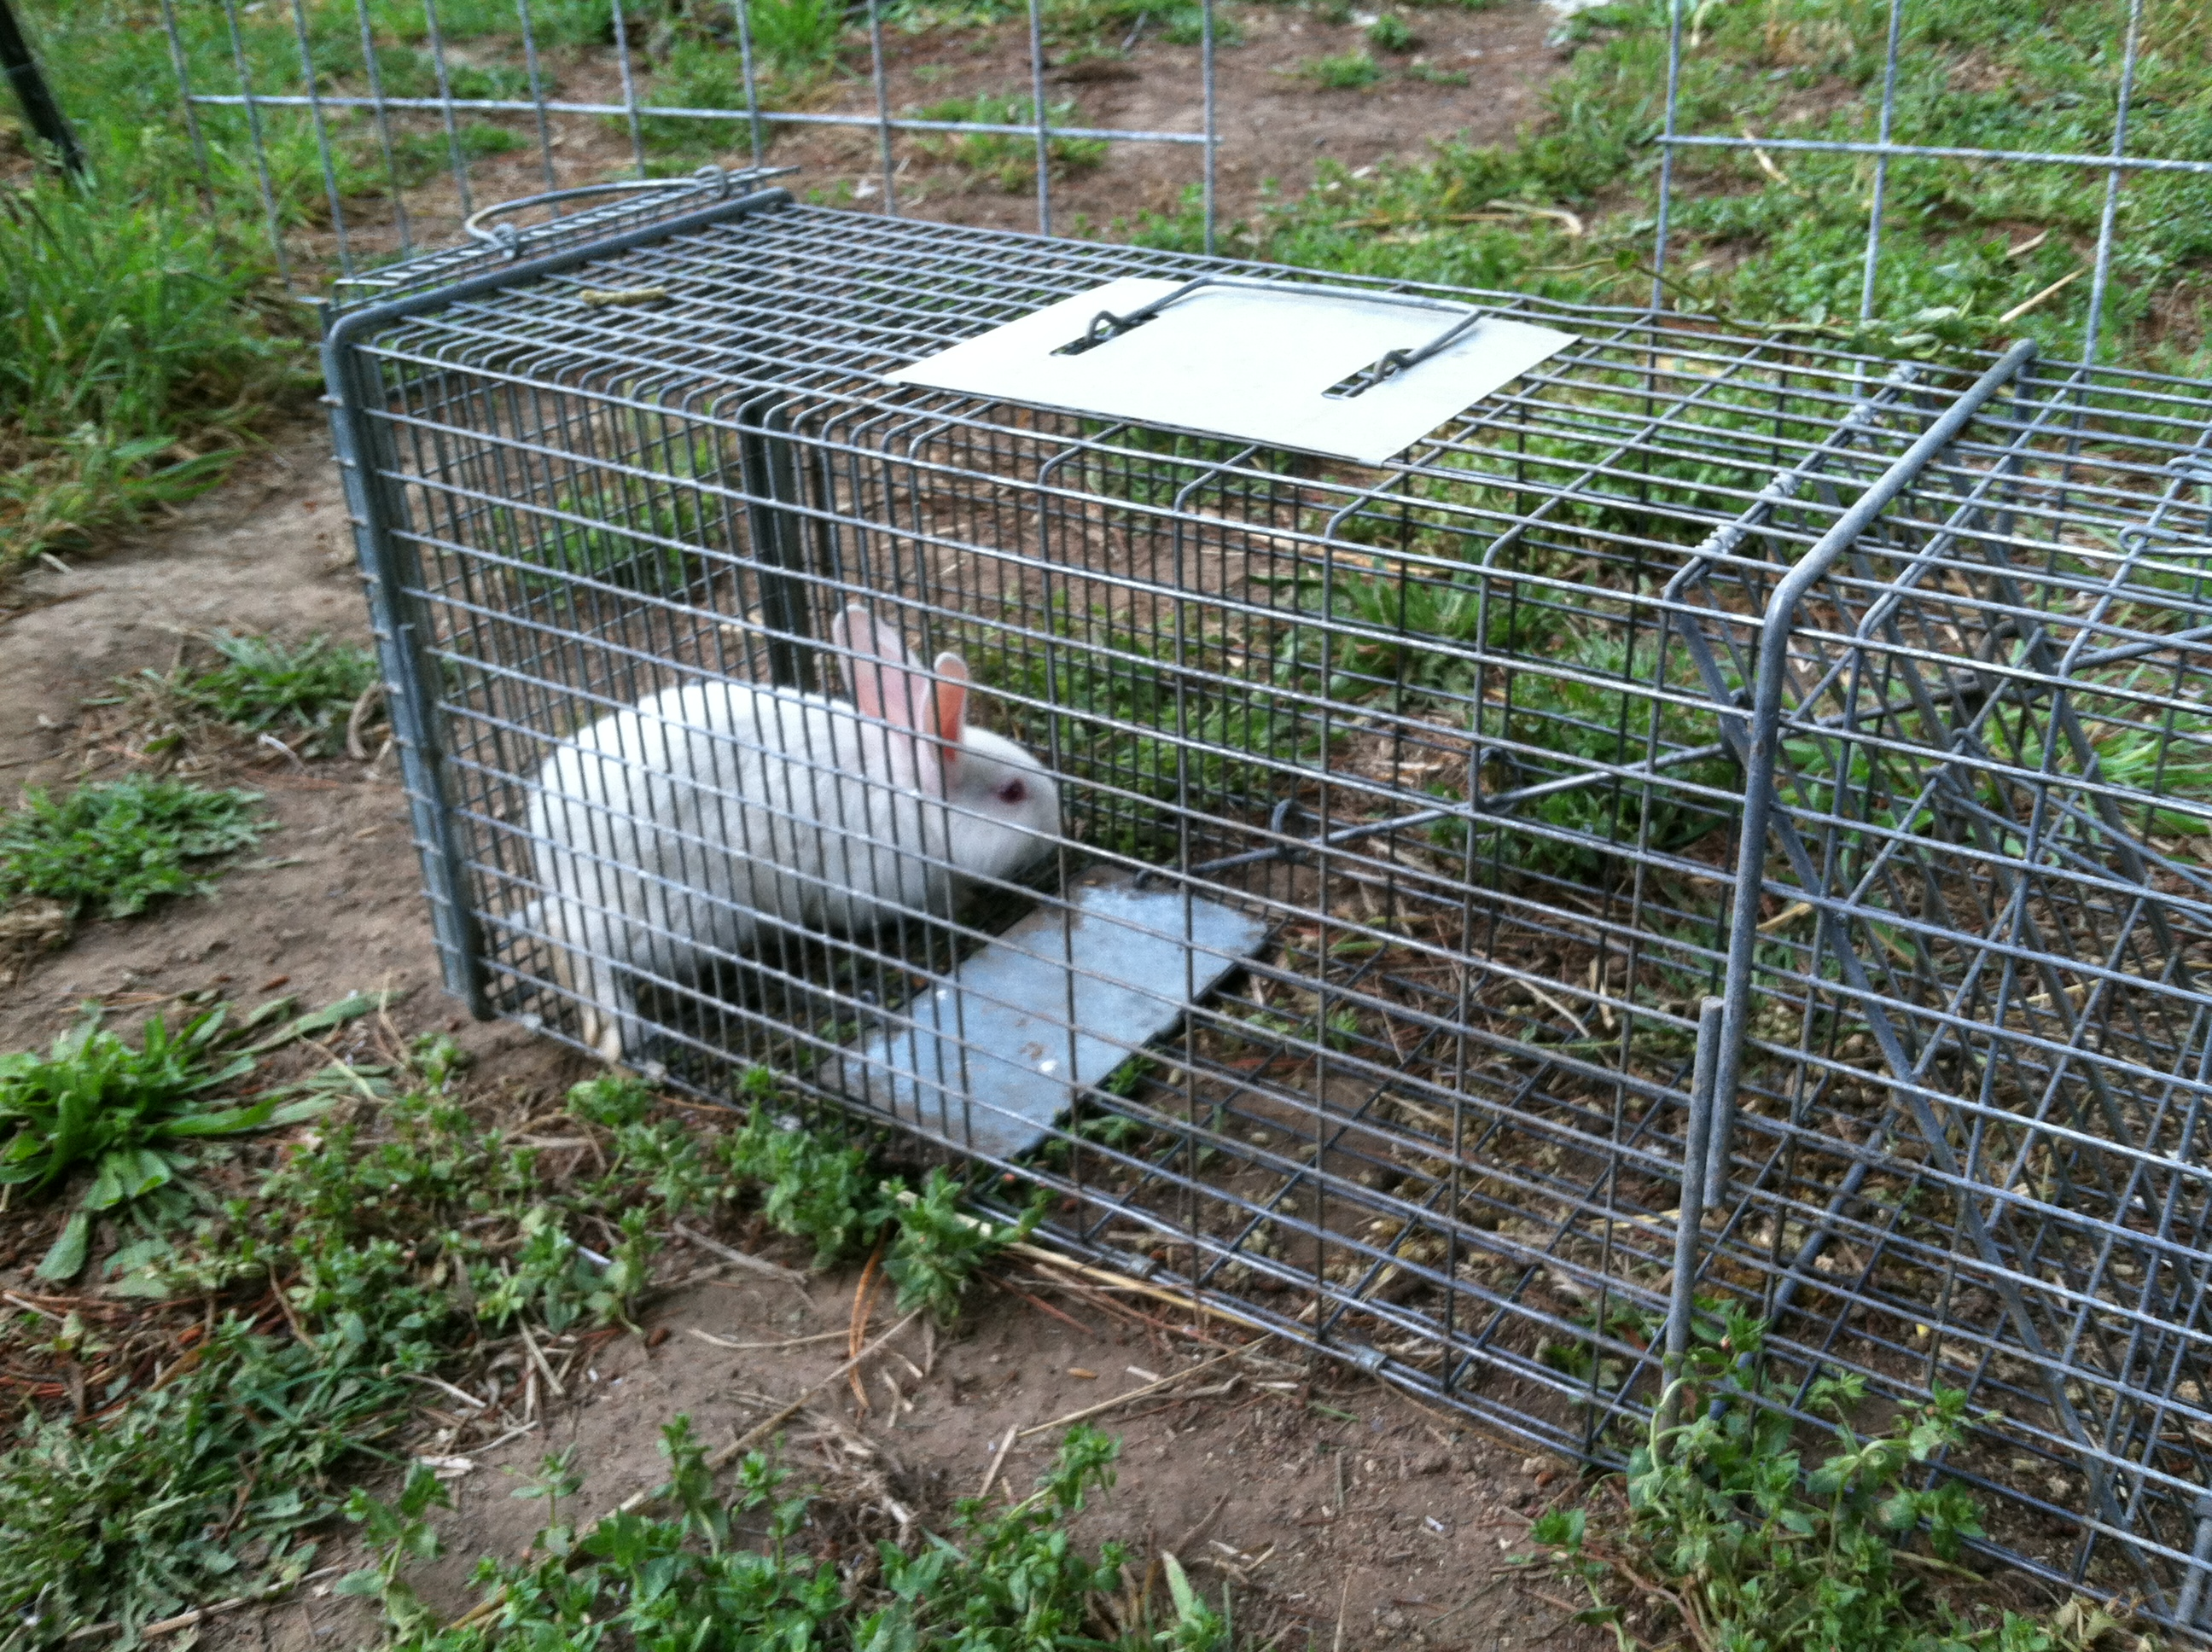 Caught one Free Range Rabbit!